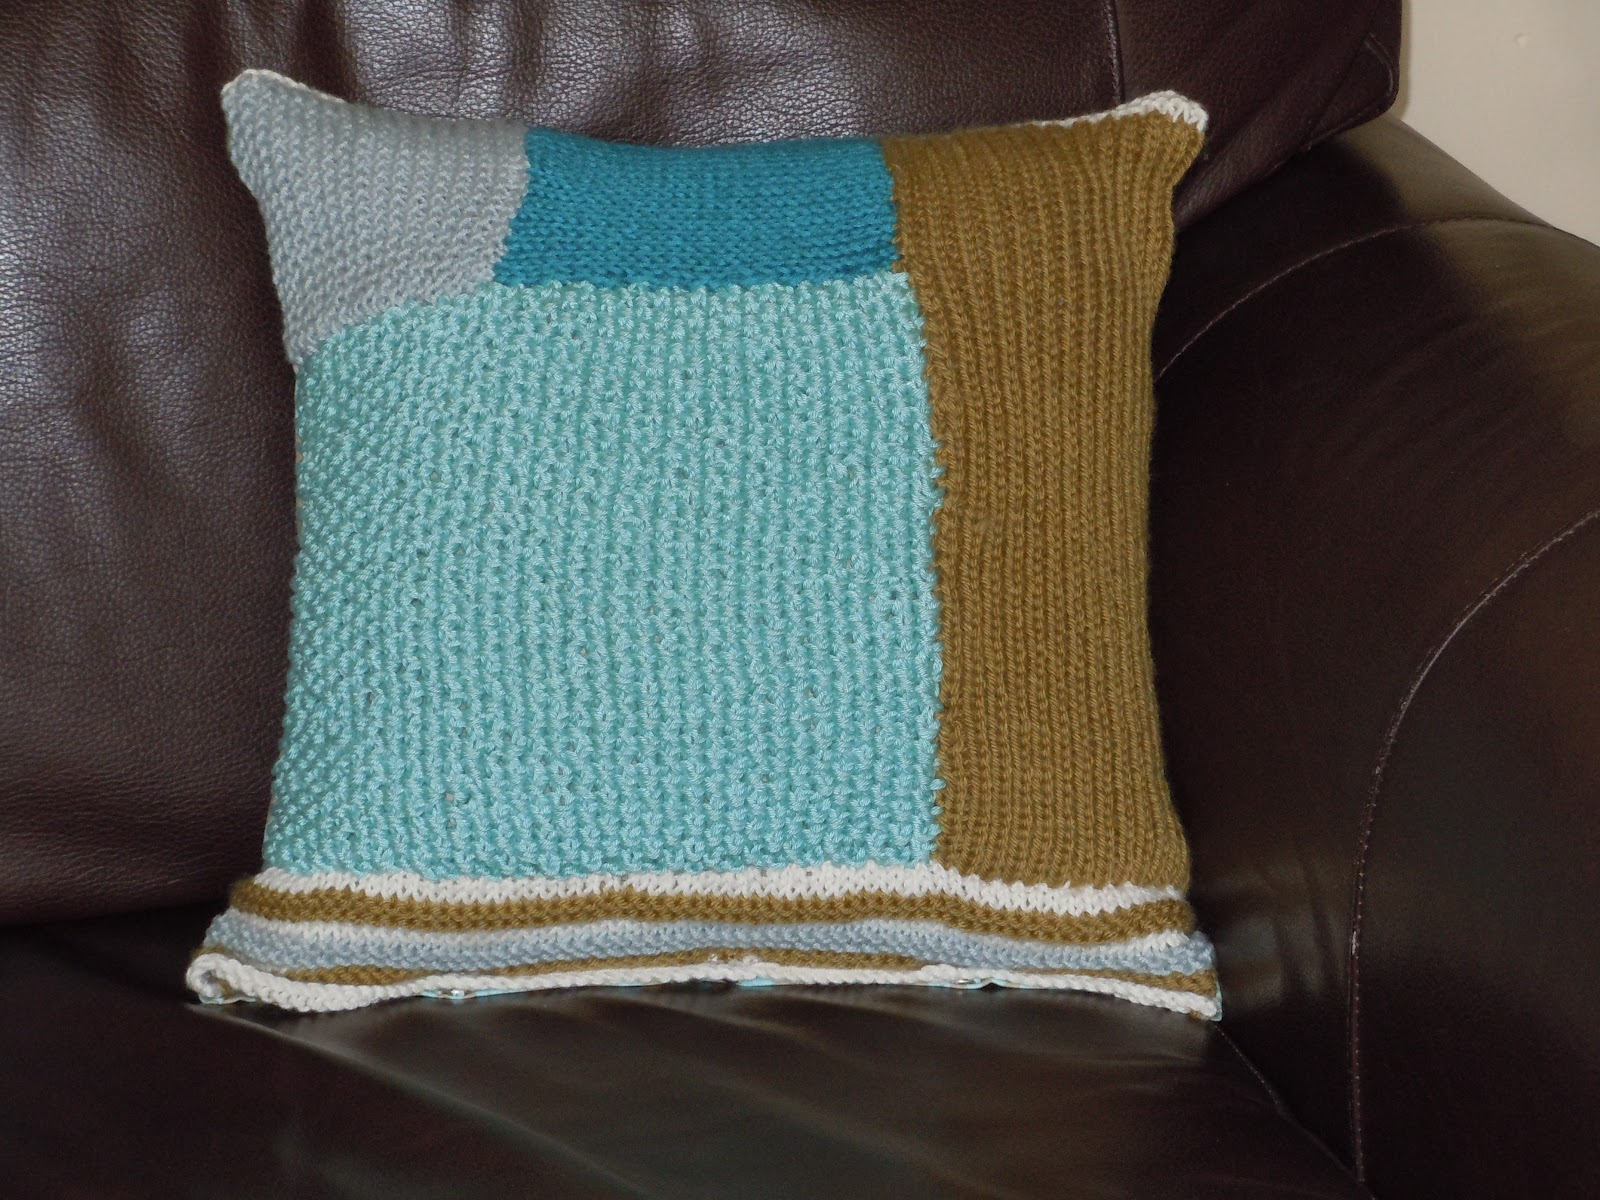 Daisy Loves Knit and Stitch: BITS AND PIECES CUSHION